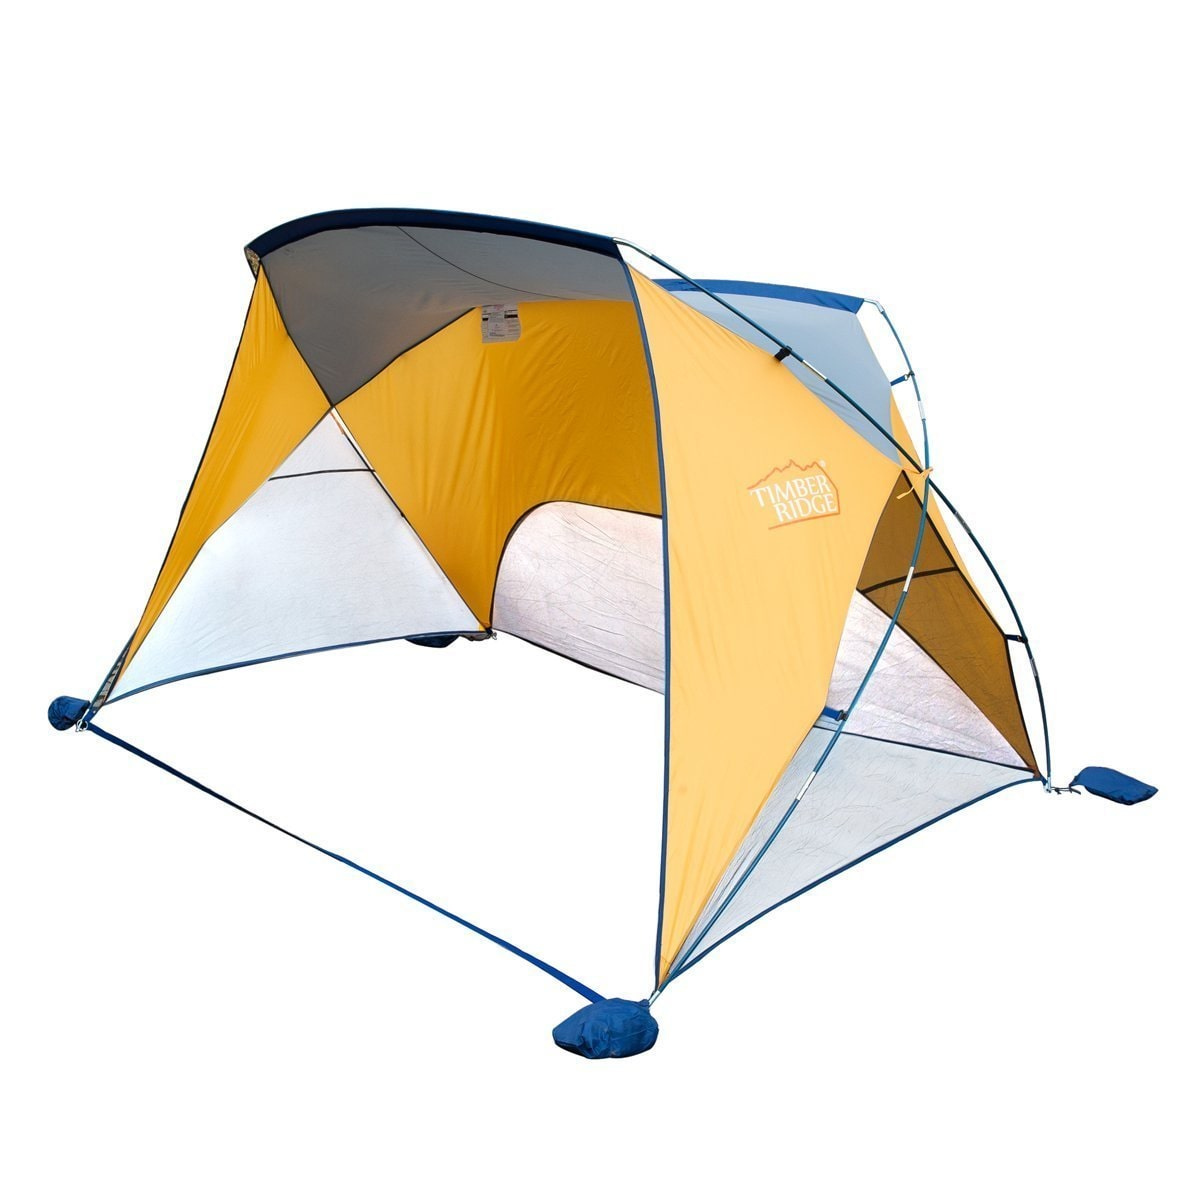 Timber Ridge Beach Cabana Sun Shelter Beach Tent with Carry Bag - Walmart .com  sc 1 st  Walmart & Timber Ridge Beach Cabana Sun Shelter Beach Tent with Carry Bag ...